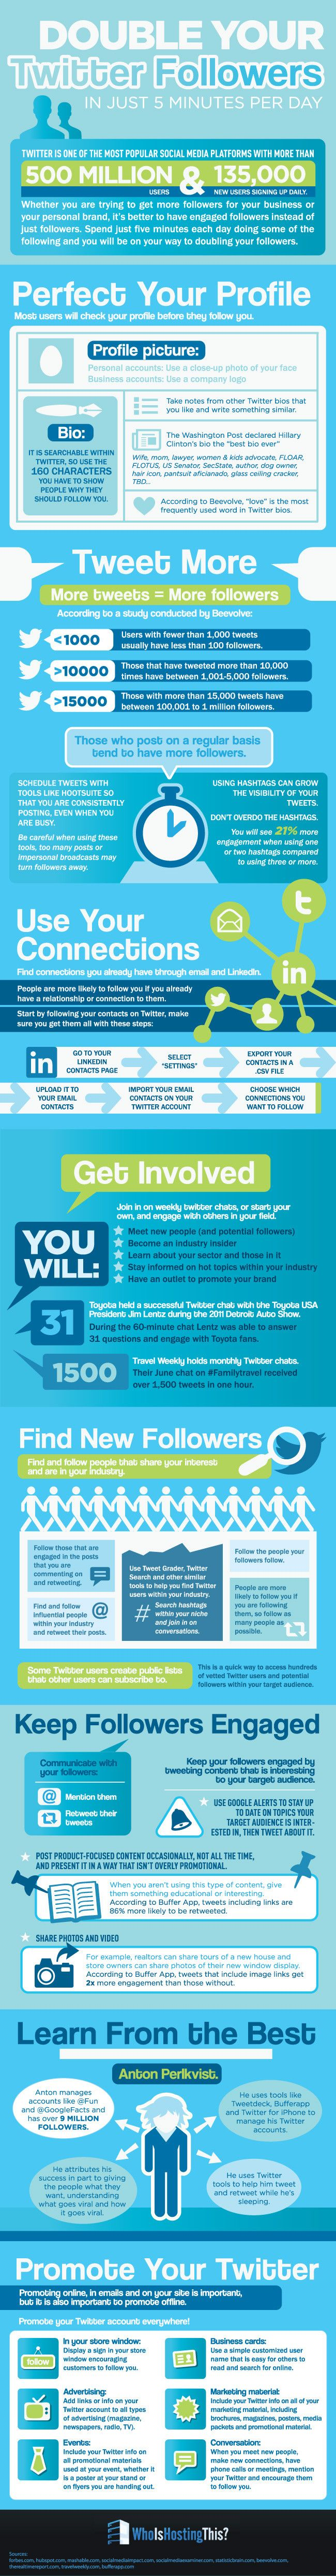 Increase twitter followers in 5 minutes